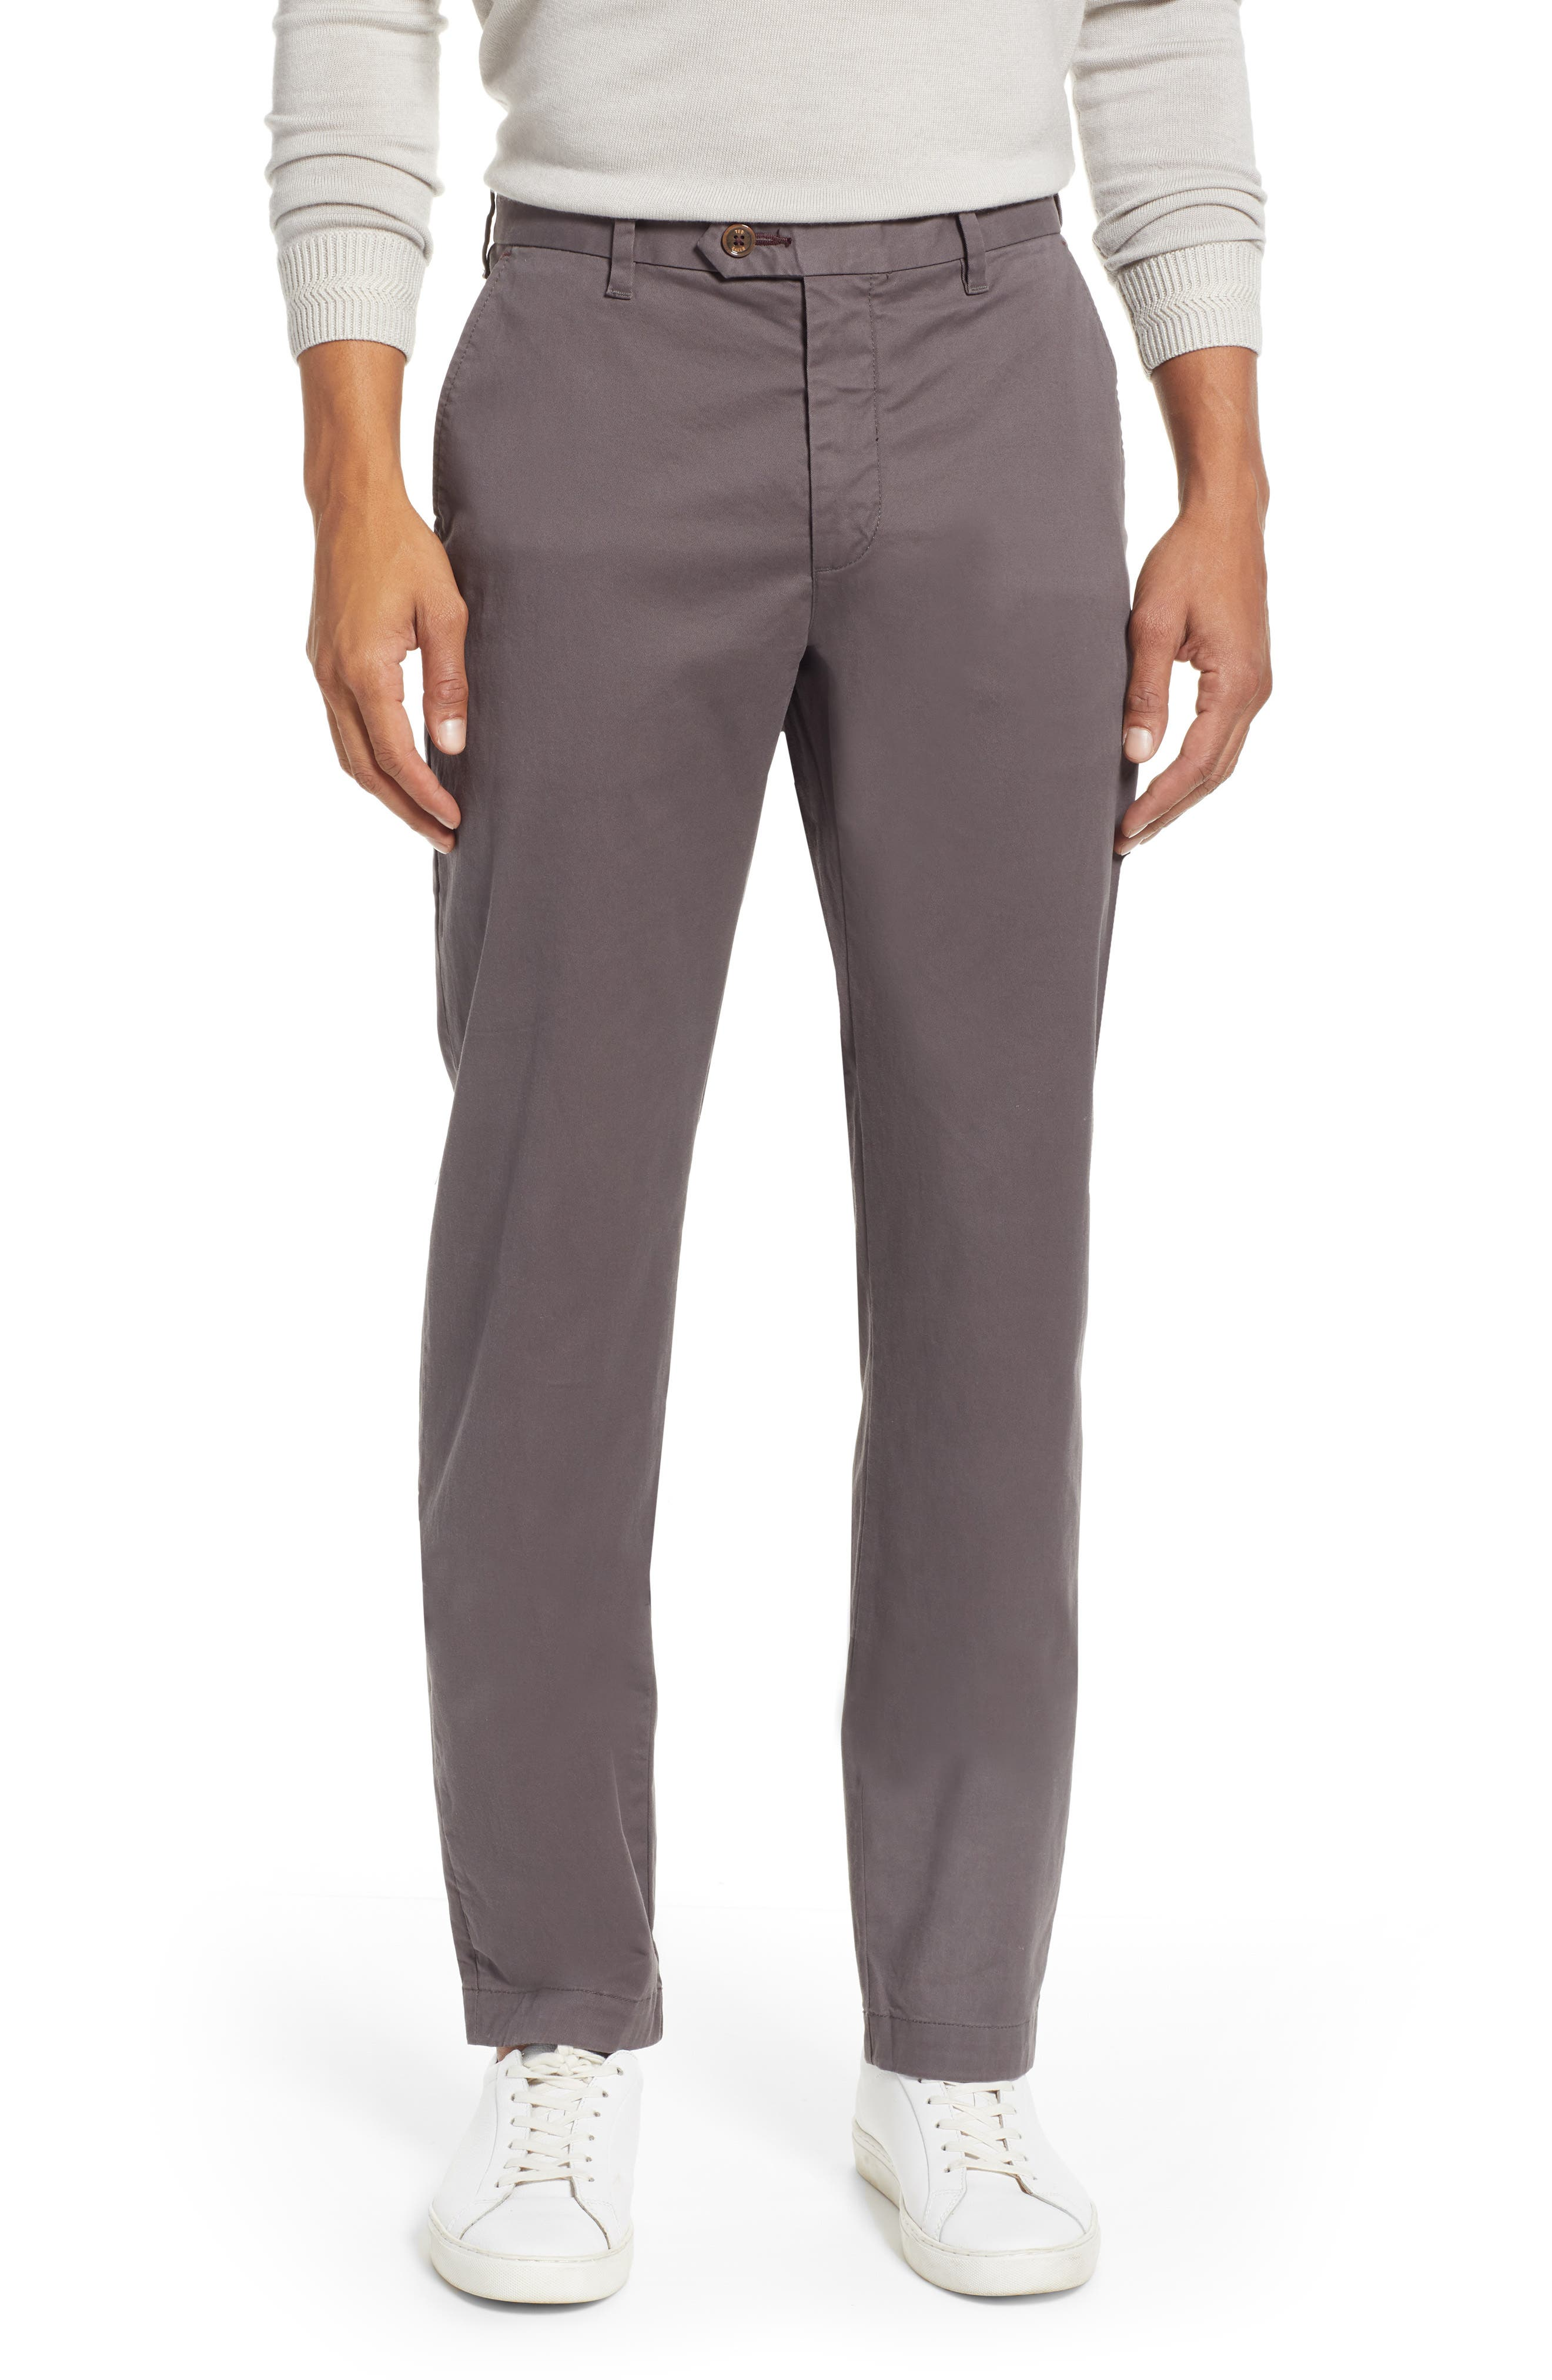 TED BAKER LONDON, Selebtt Slim Fit Stretch Cotton Chinos, Main thumbnail 1, color, 020